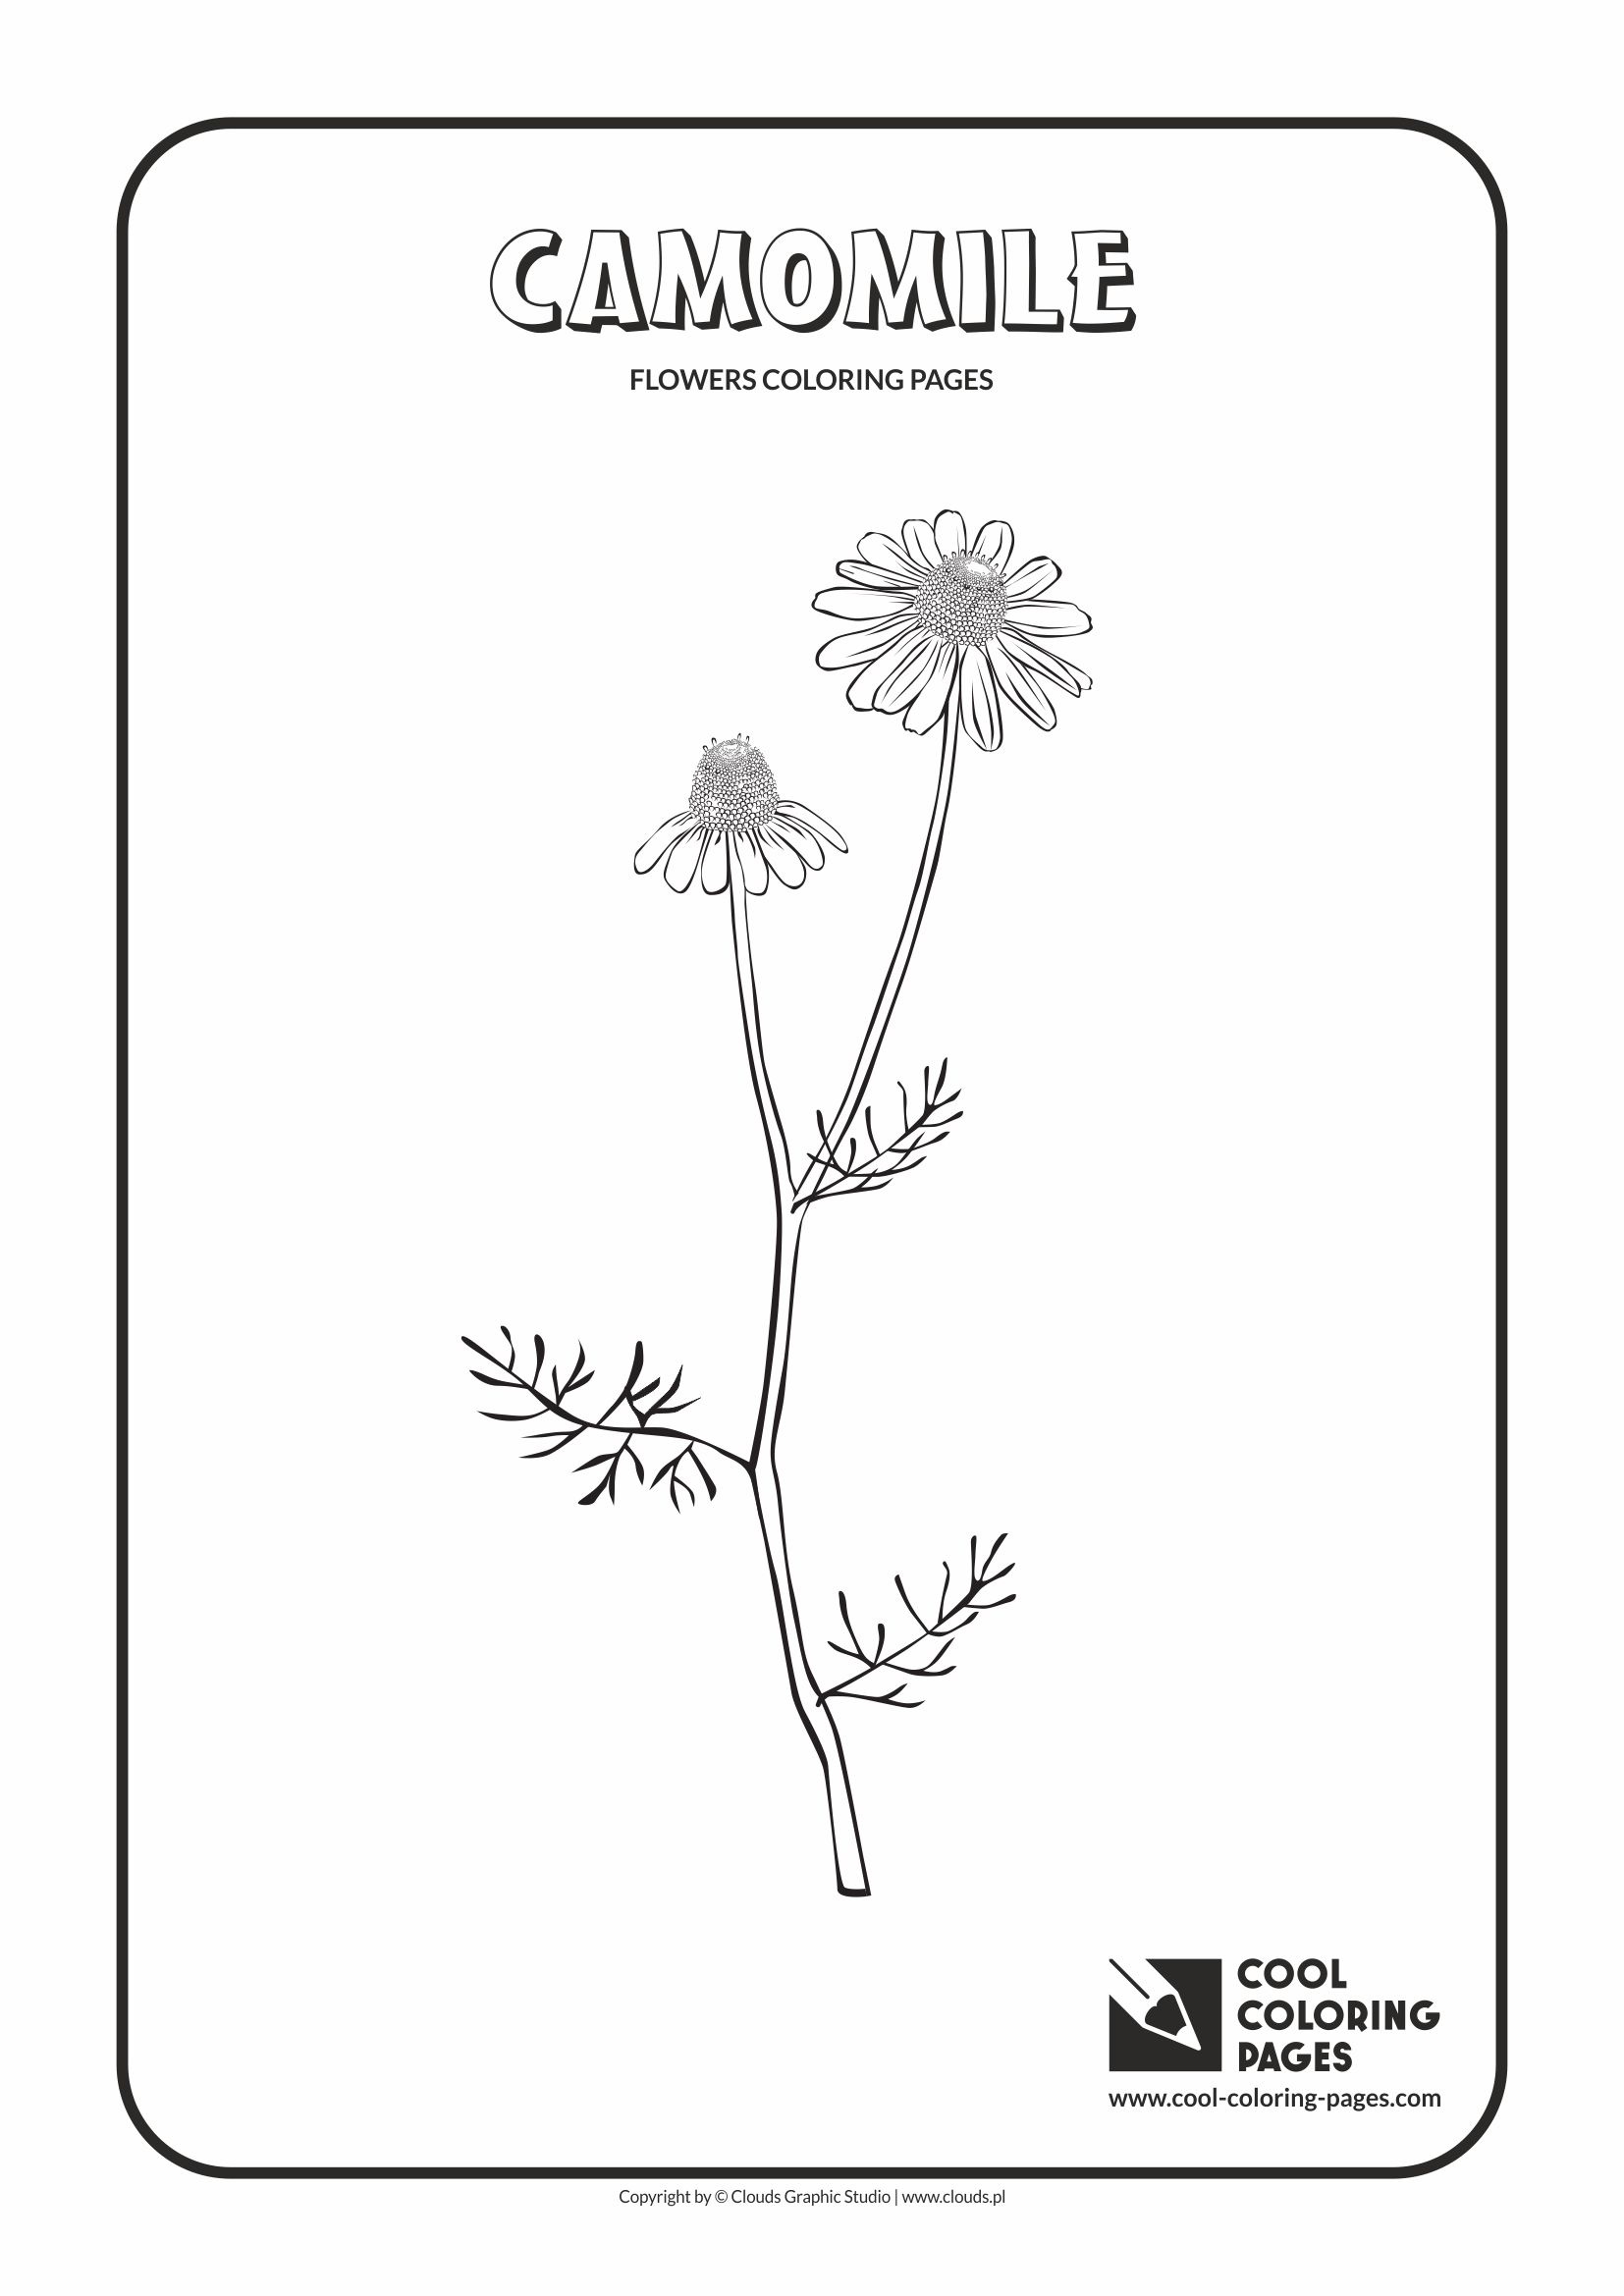 Cool Coloring Pages - Plants / Camomile / Coloring page with camomile